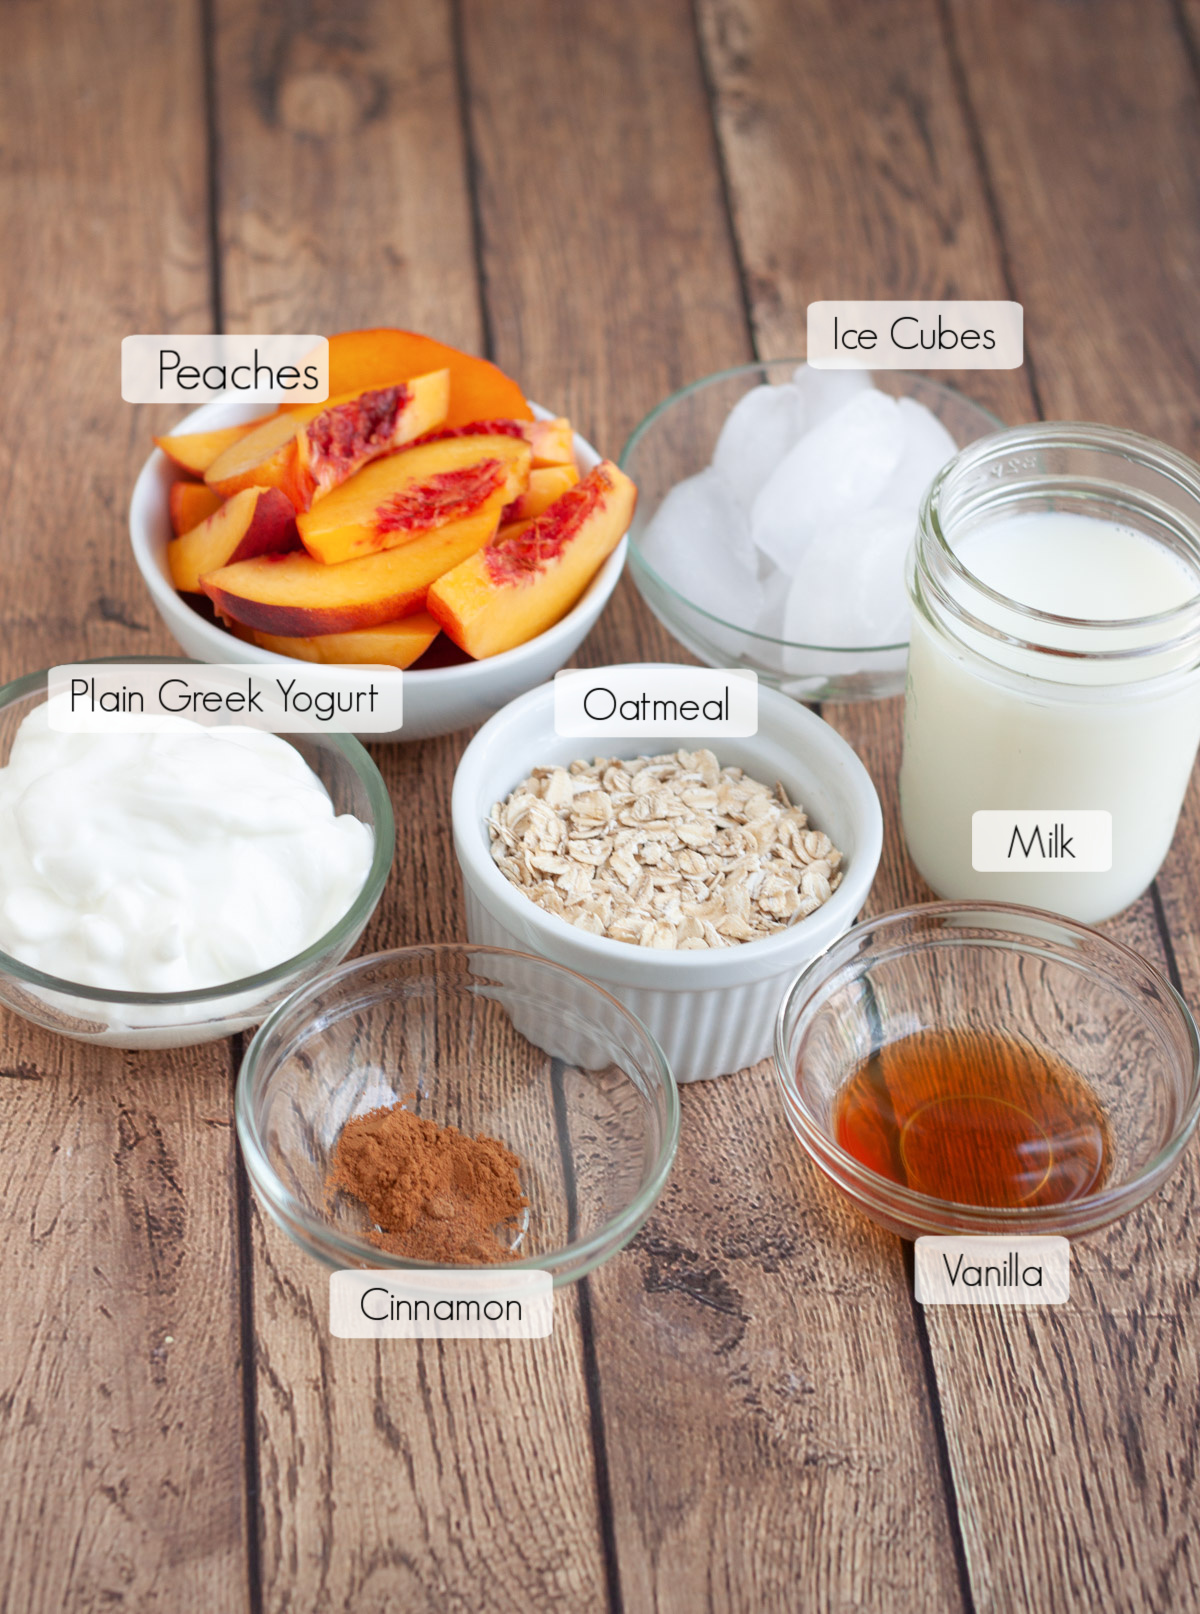 Ingredients in bowls with labels to make a peach pie smoothie with yogurt.